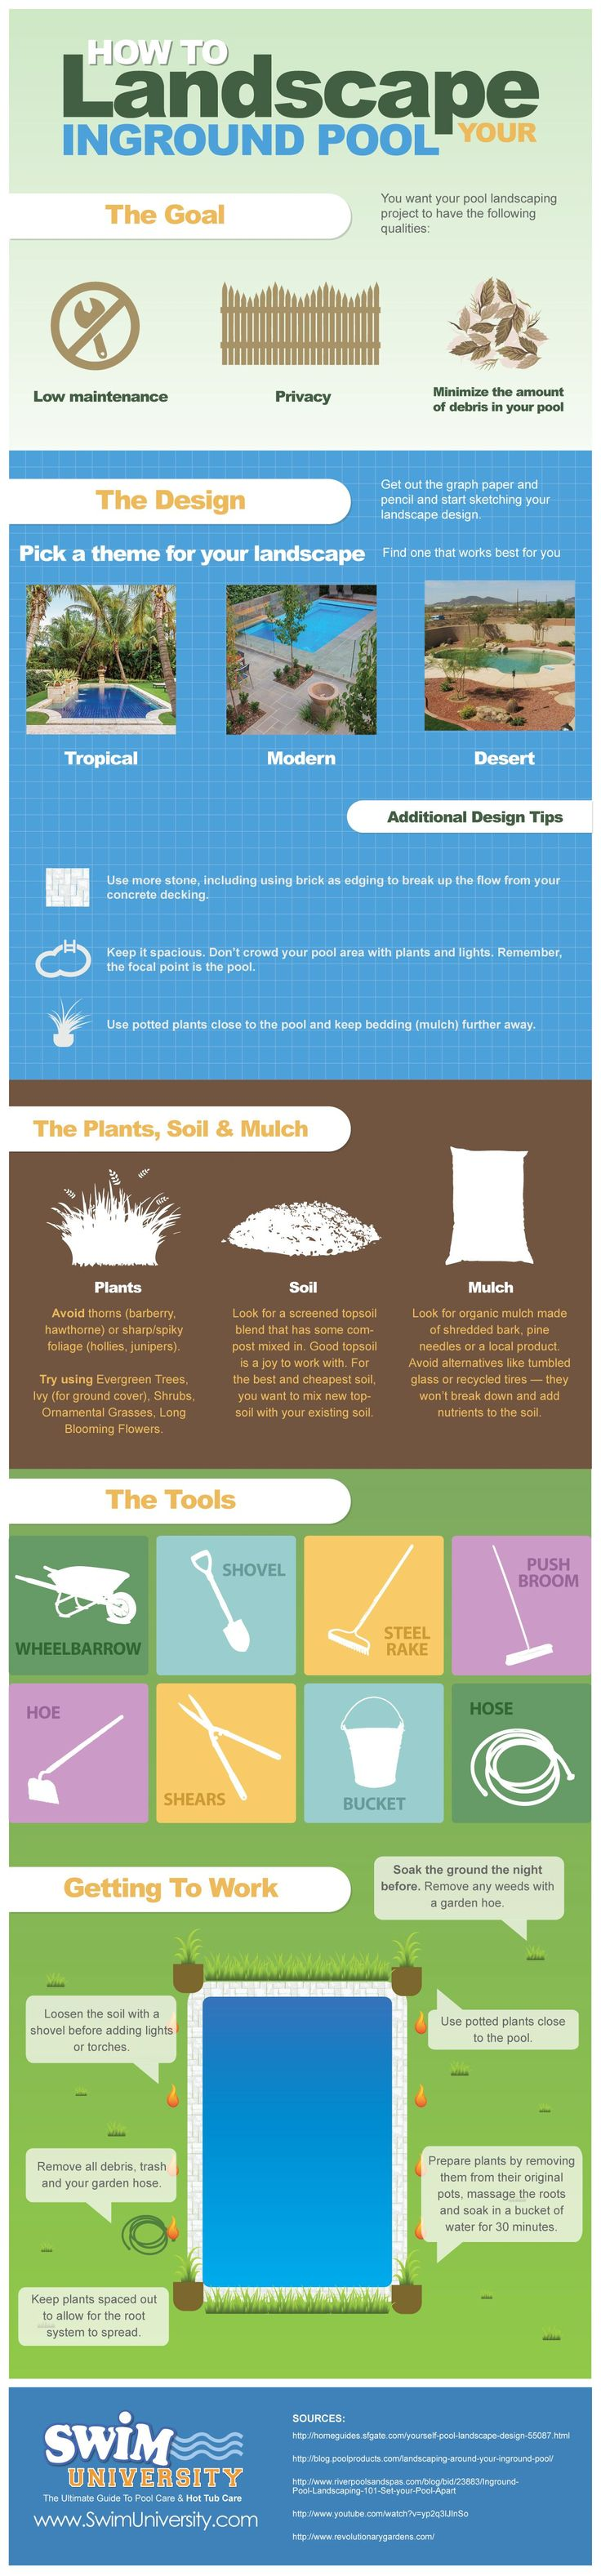 How to #Landscape Around Your Inground Pool in a Weekend